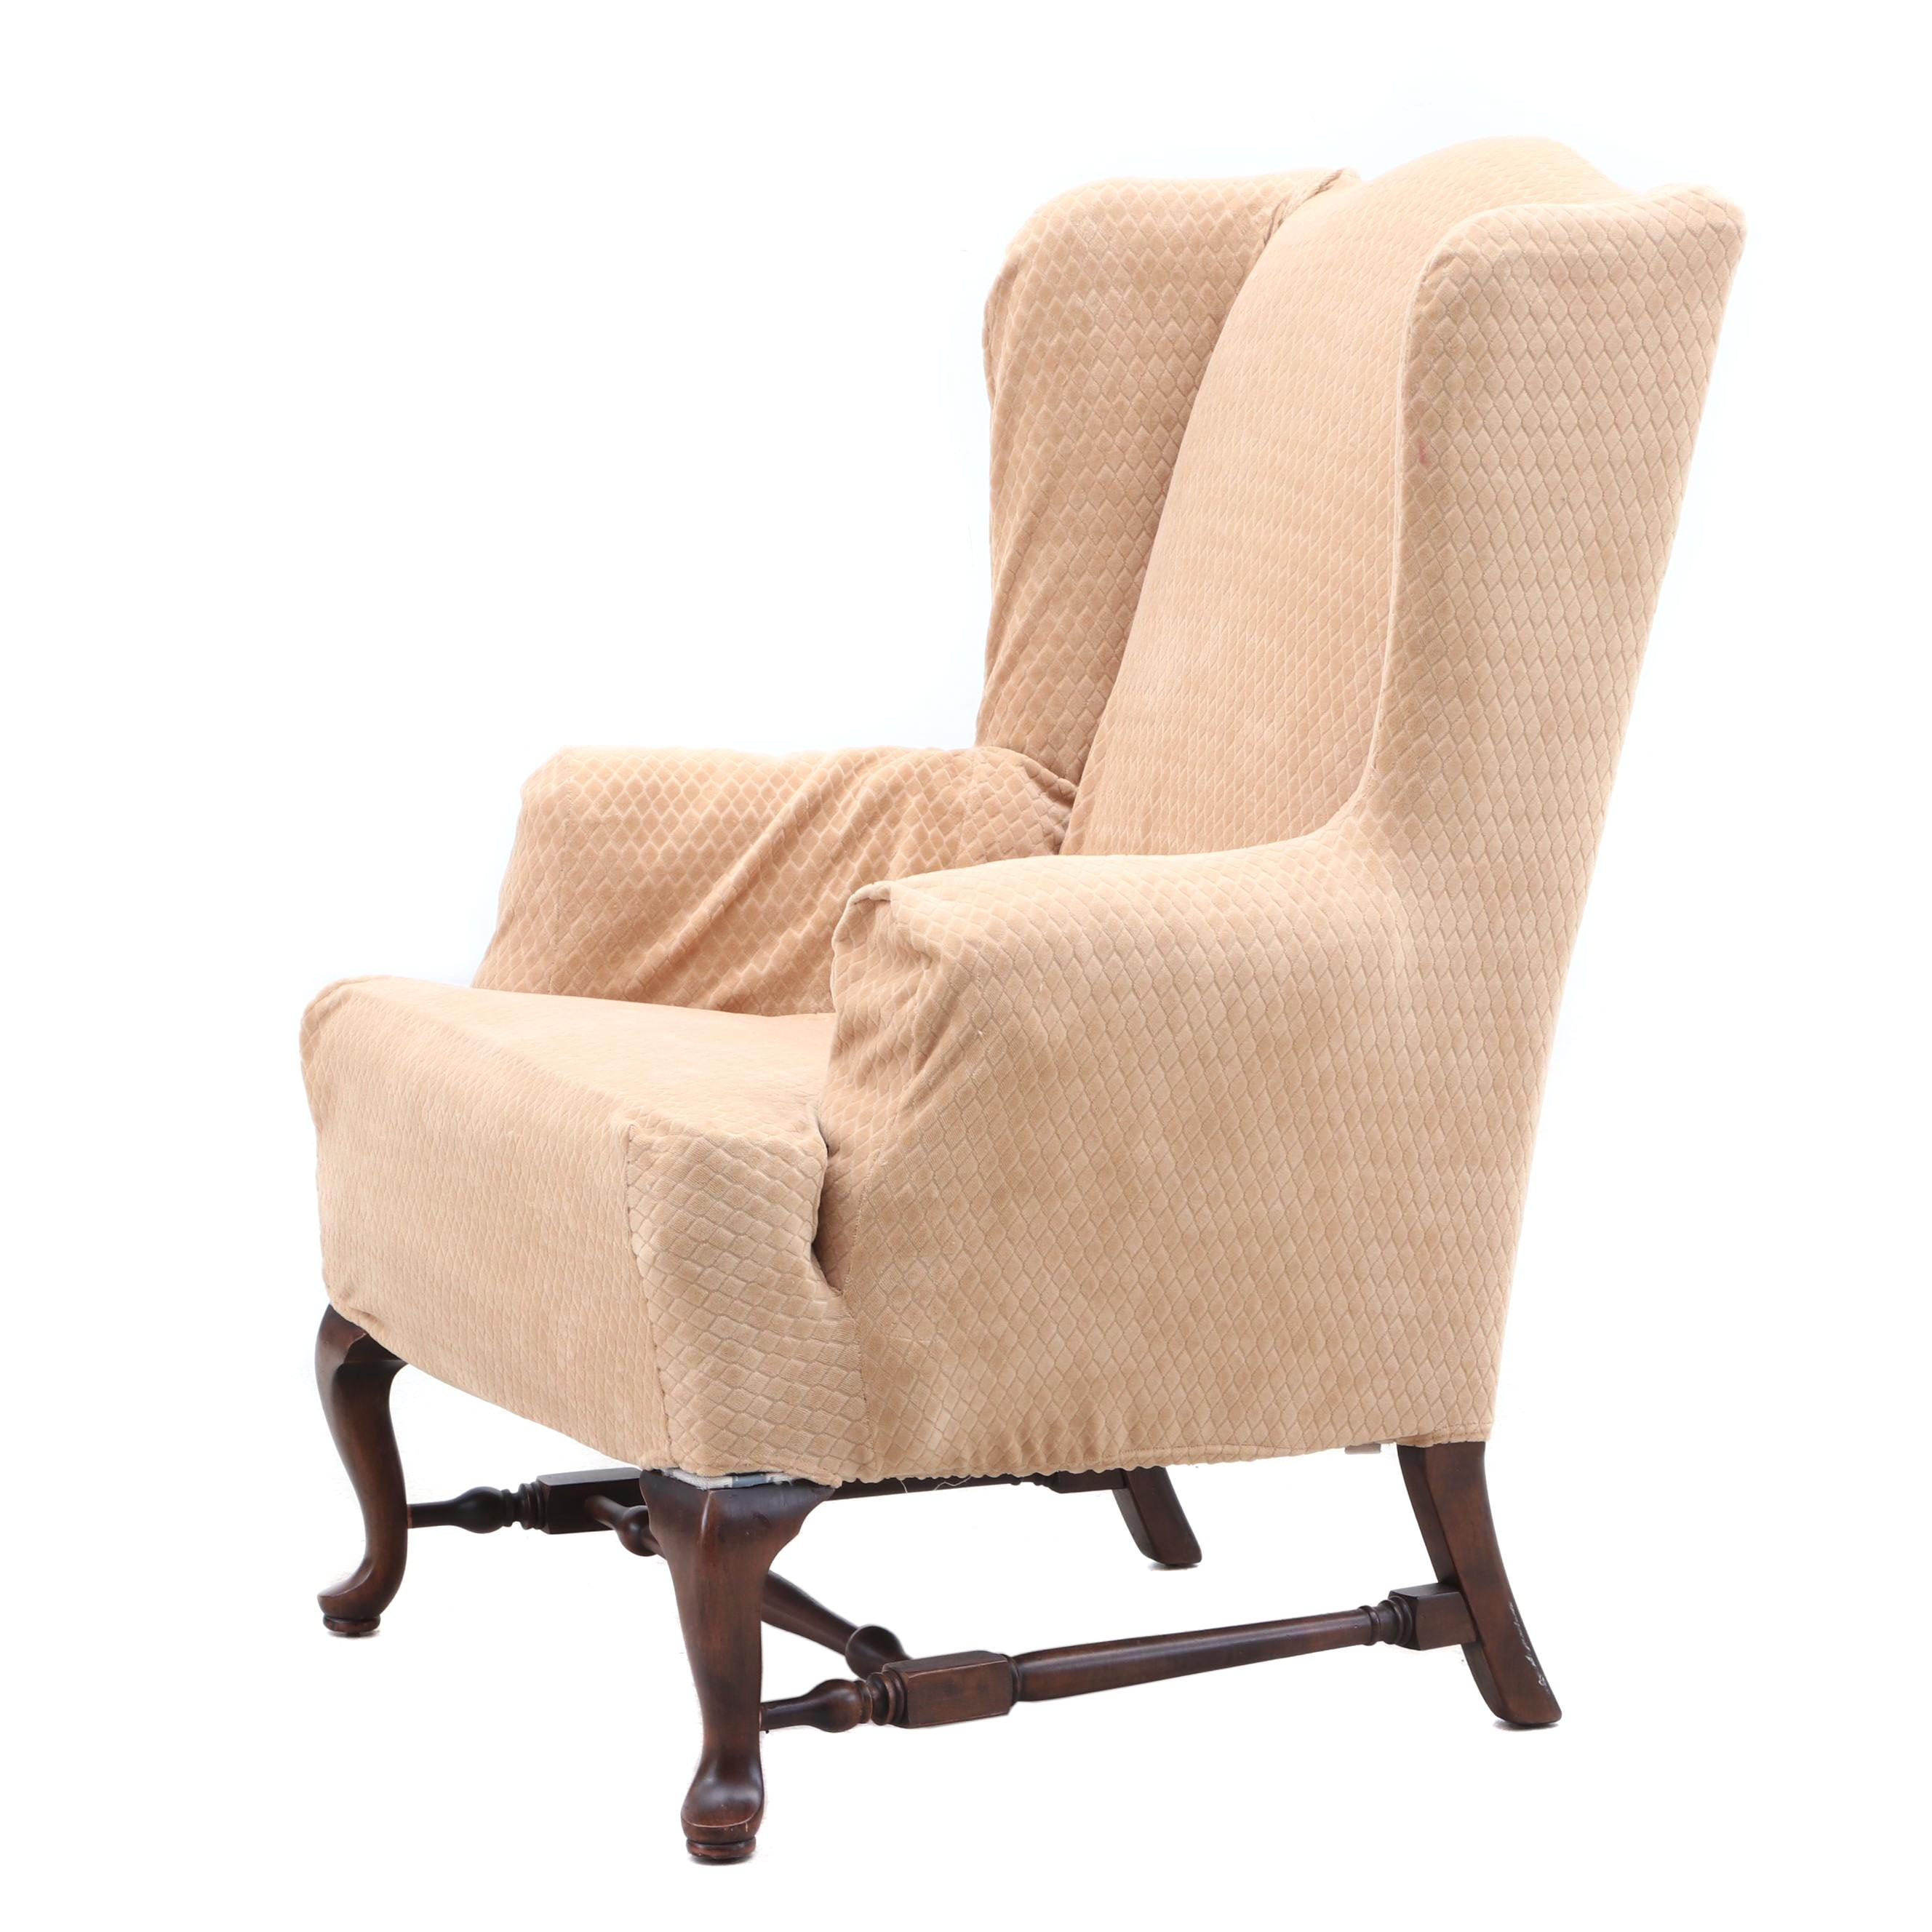 Wingback Armchair with Slip Cover